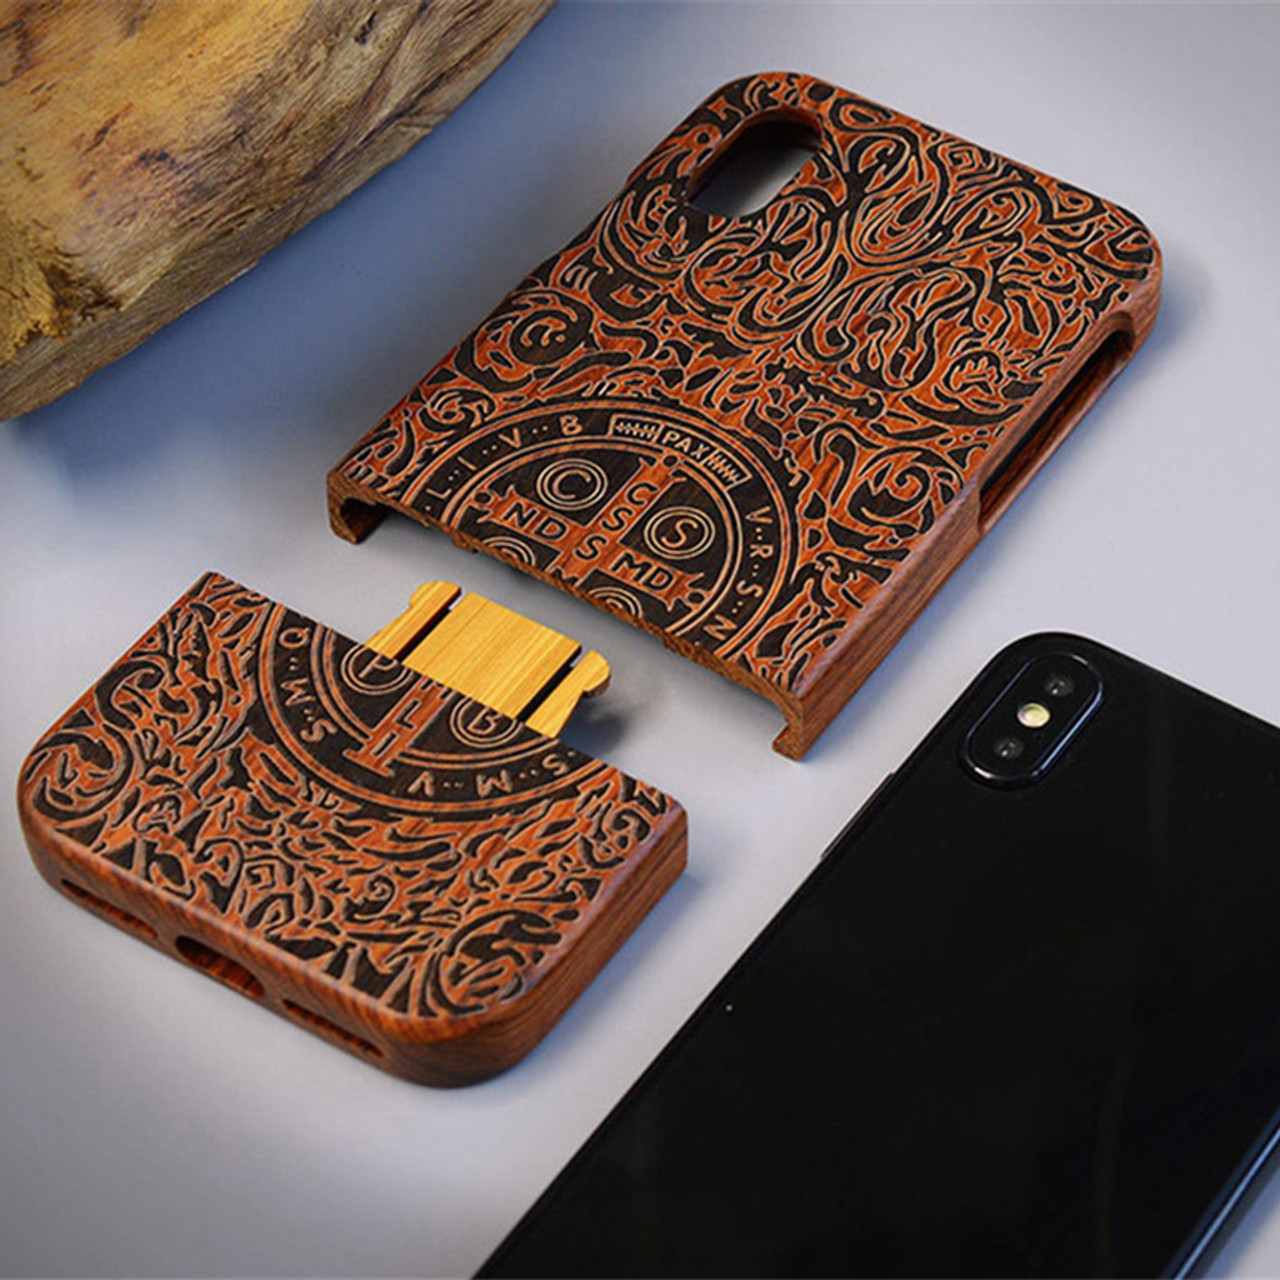 buy online 7dcee 6c72a Carved Tiger Dragon Luxury Wood Phone Case For Apple iPhone X XS Max XR 5  5S SE 6 6plus 6S 7 8 Plus Full Wooden Case Cover